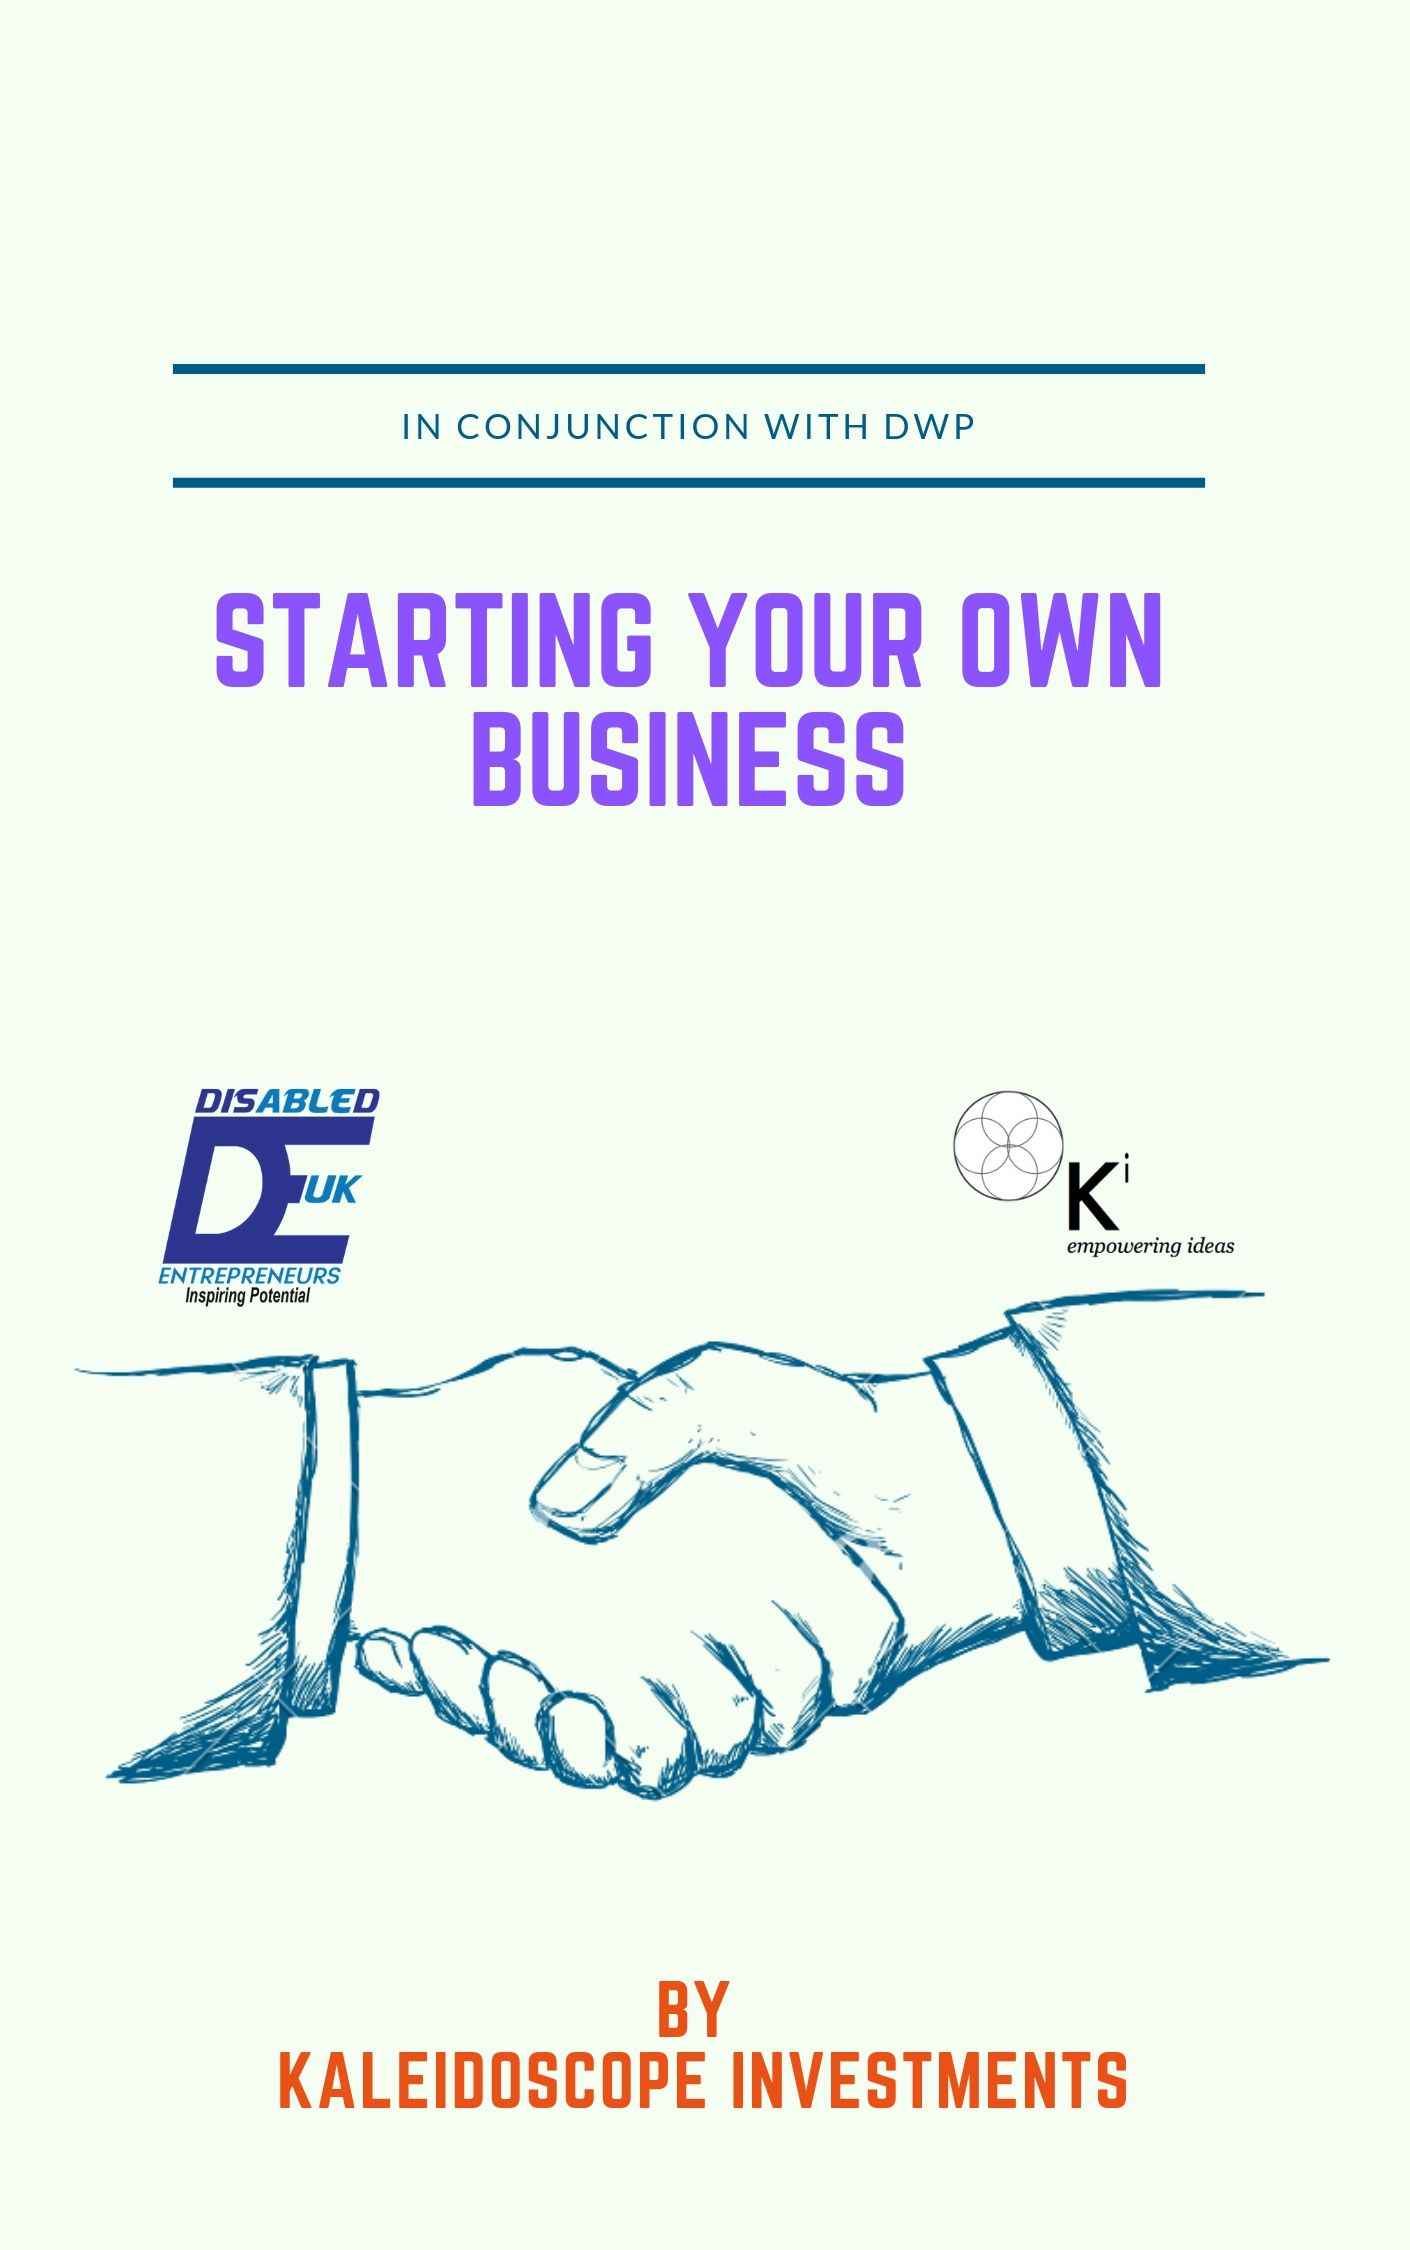 Disability guide business